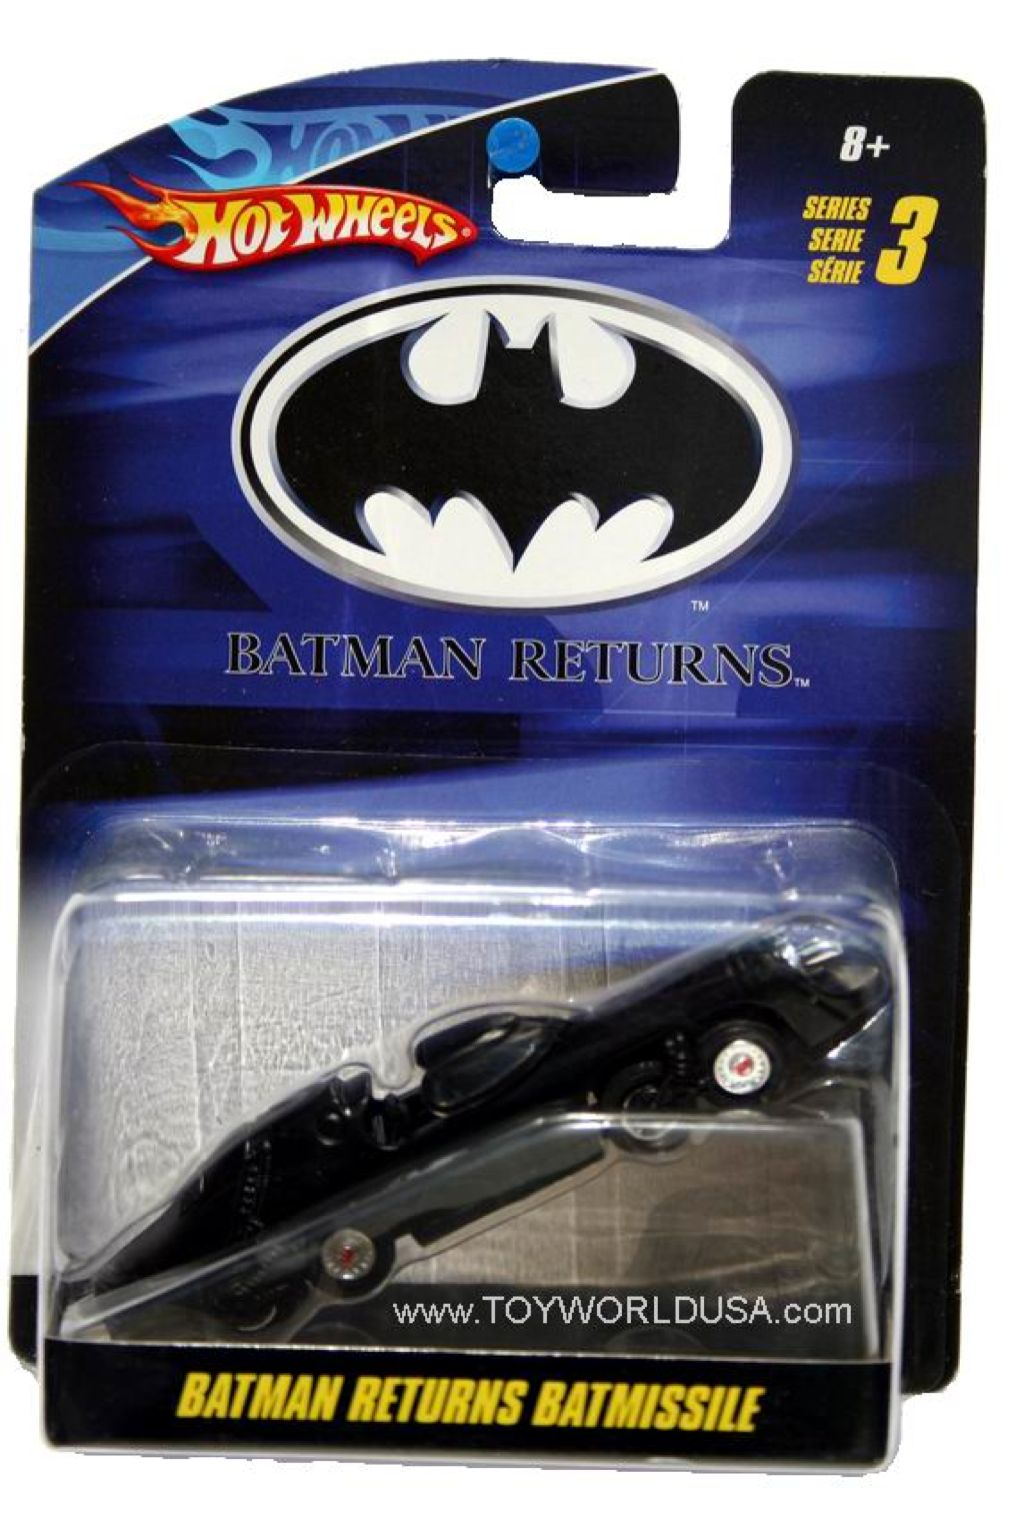 Batman™ Returns Batmissile™ Toy Car, Die Cast, And Hot Wheels - R5383 (2010) back image (back cover, second image)